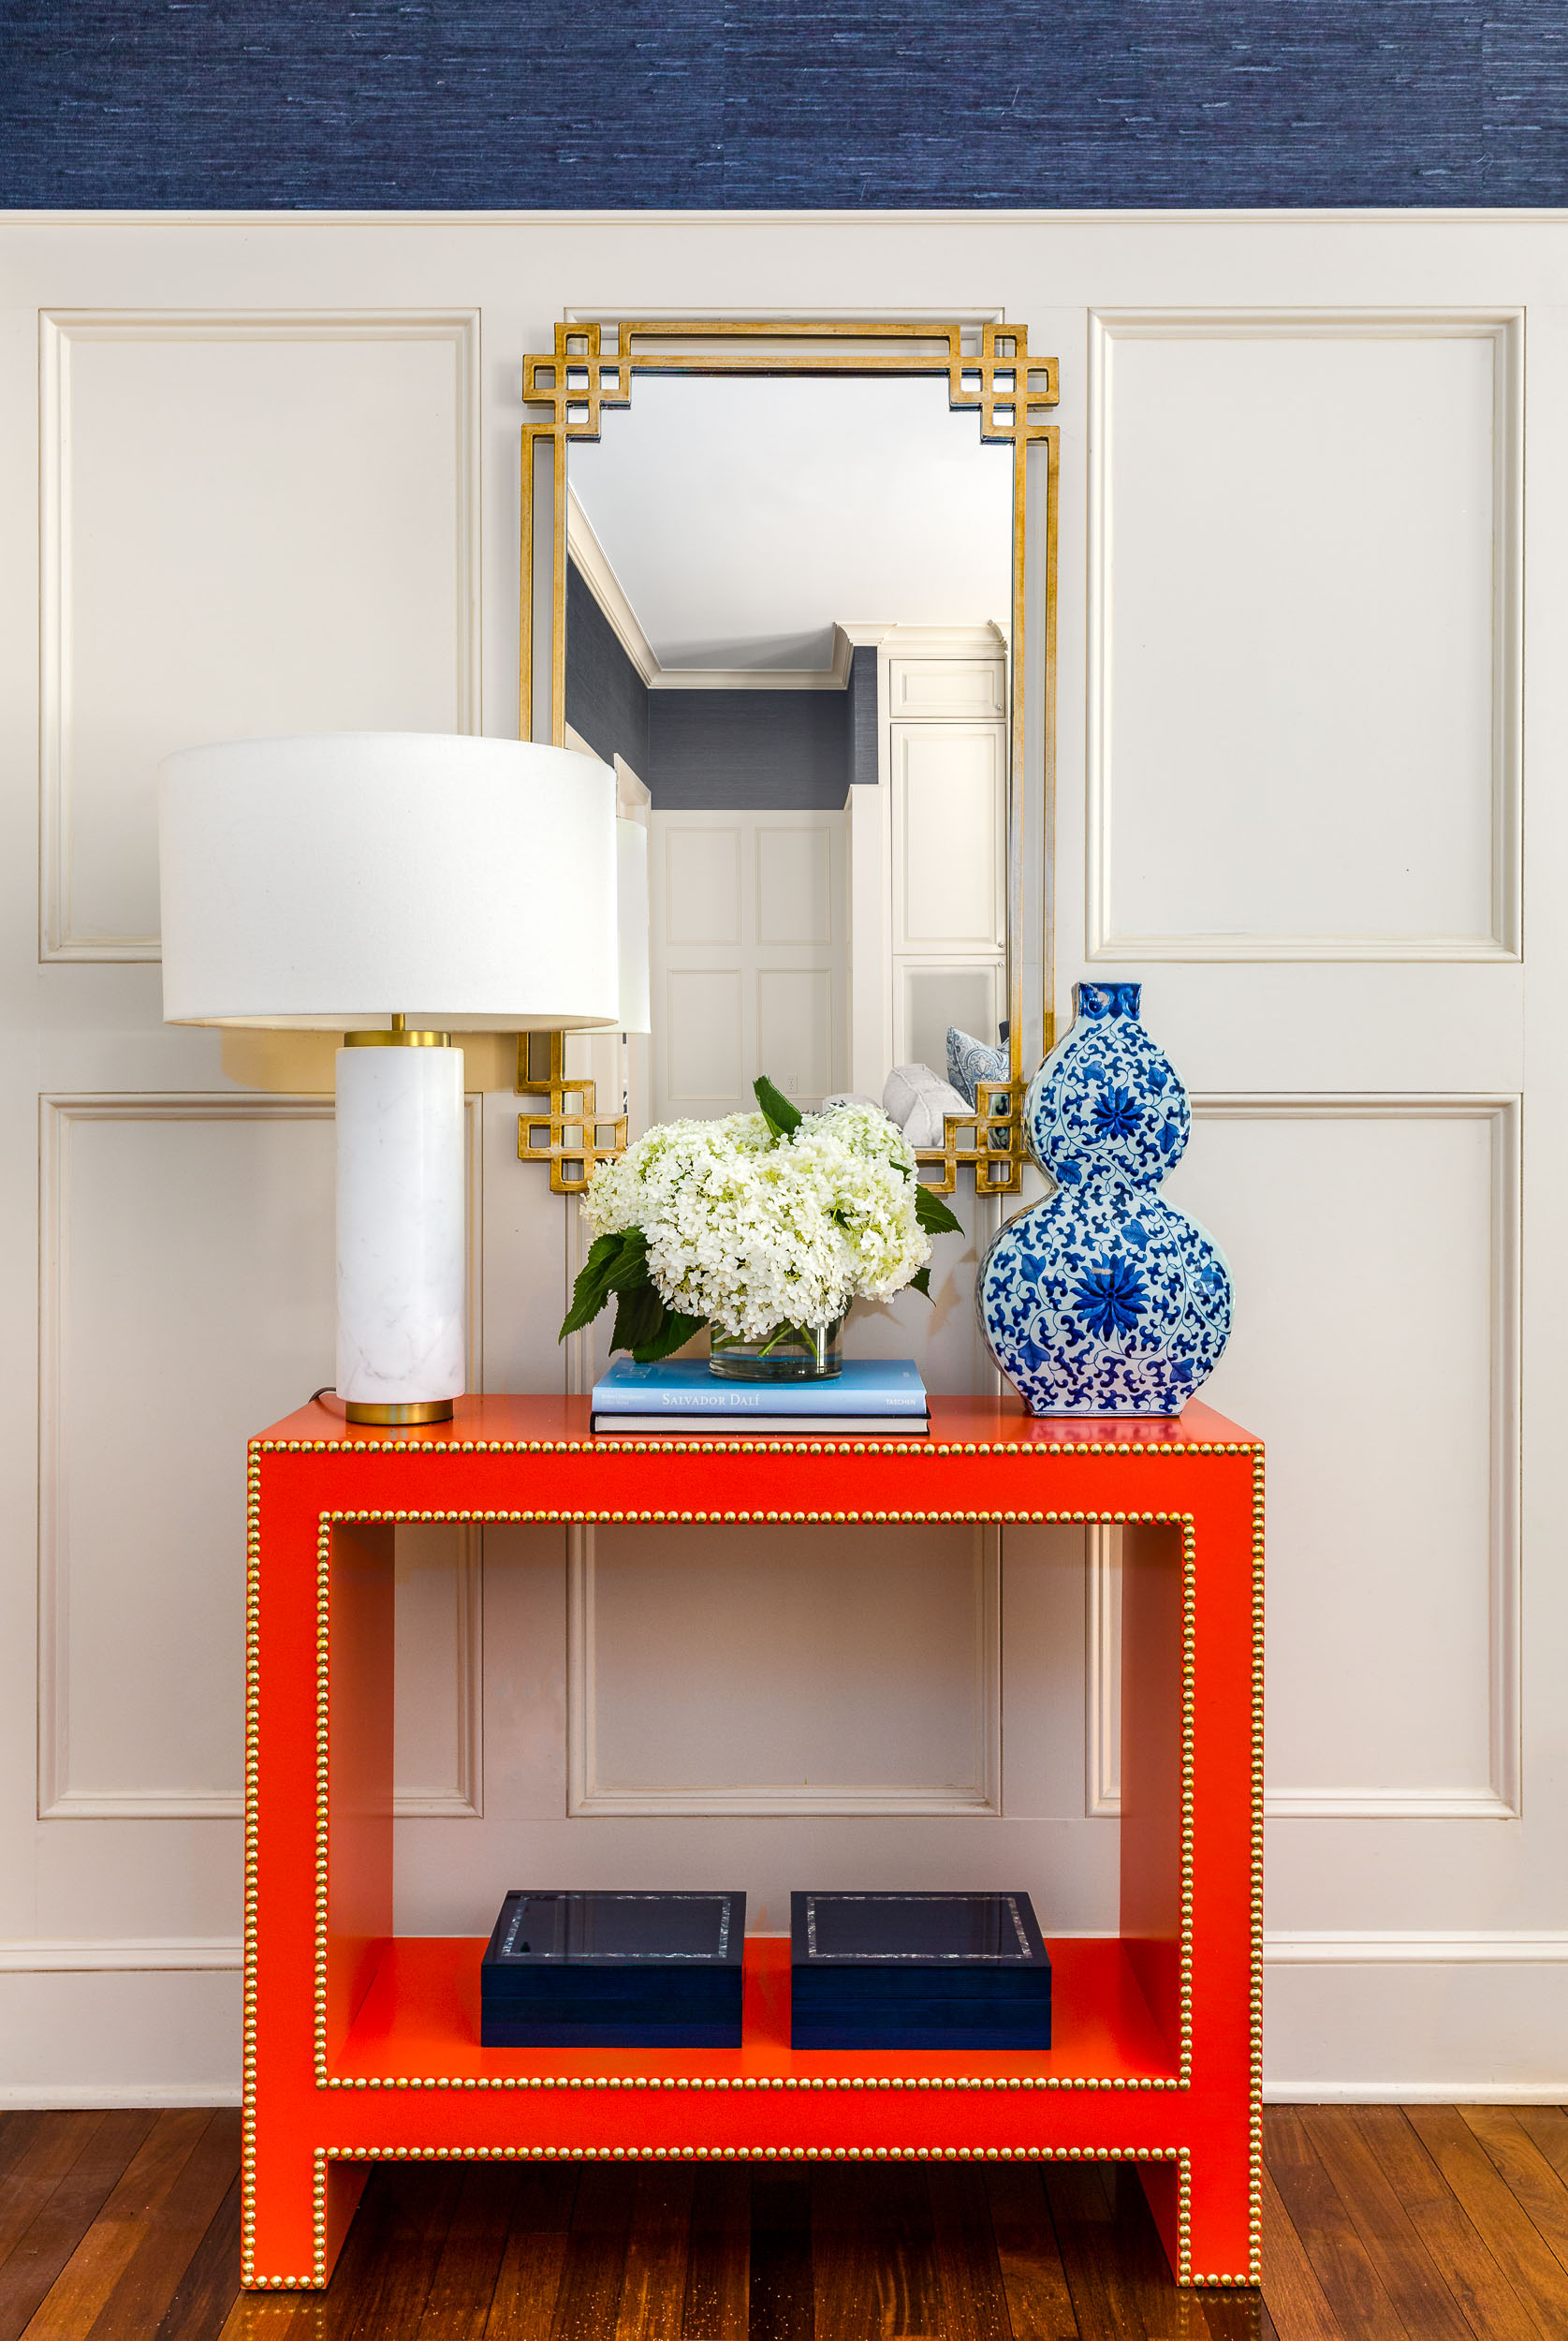 Decorative accent table in a luxury home's living room.